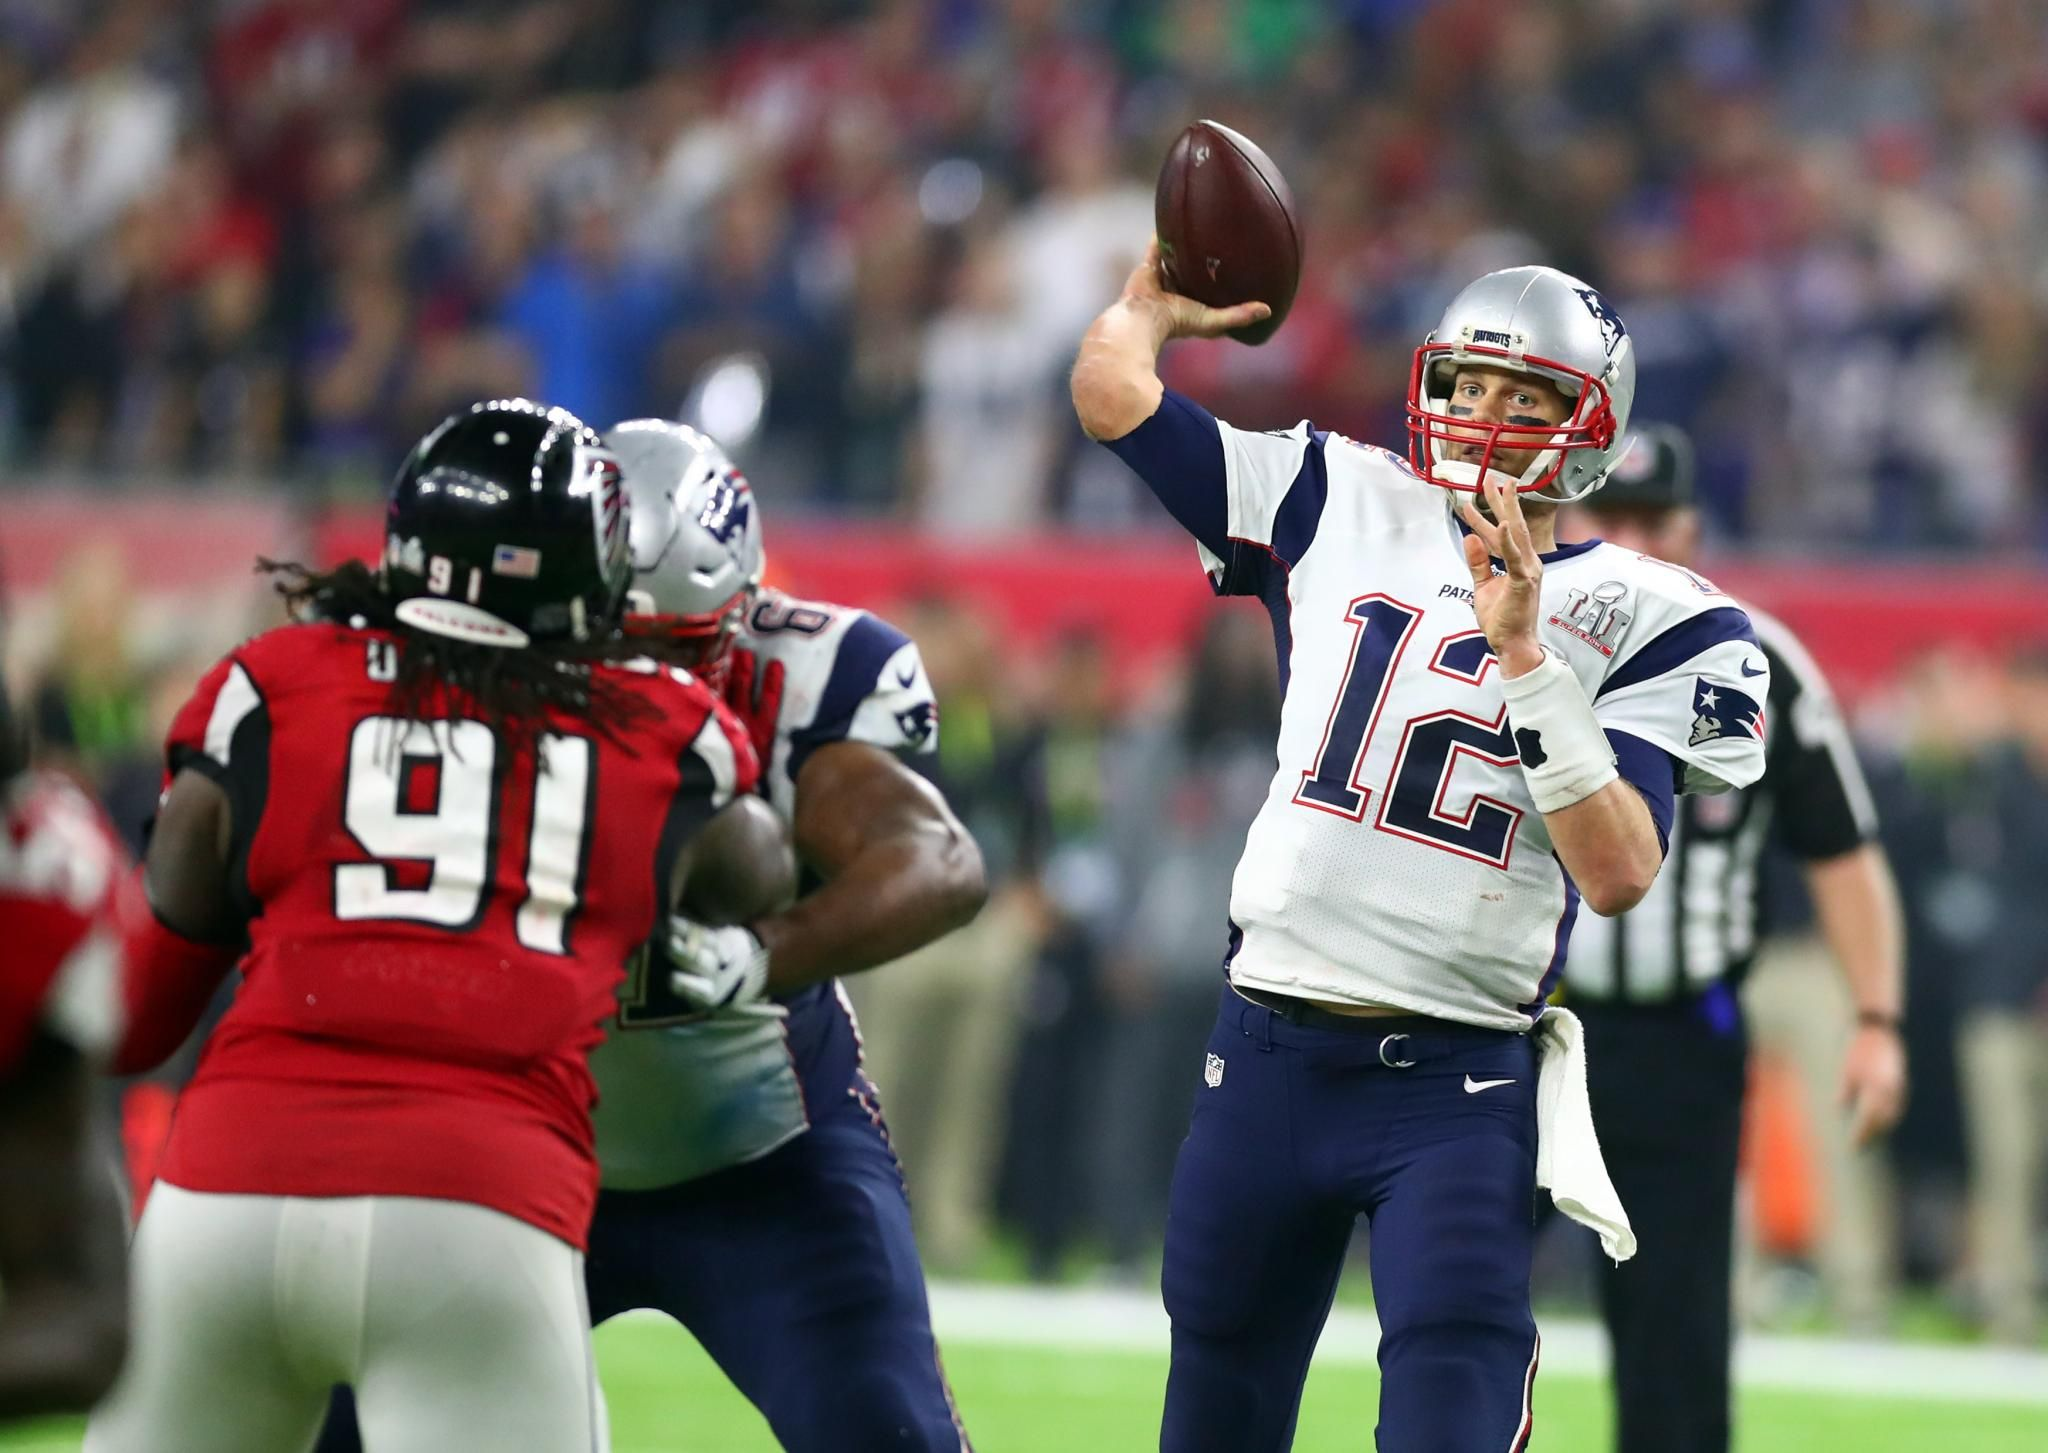 Why Patriots Wearing White Jerseys In Super Bowl Lii Is Significant Tom Brady Football Season Super Bowl Li